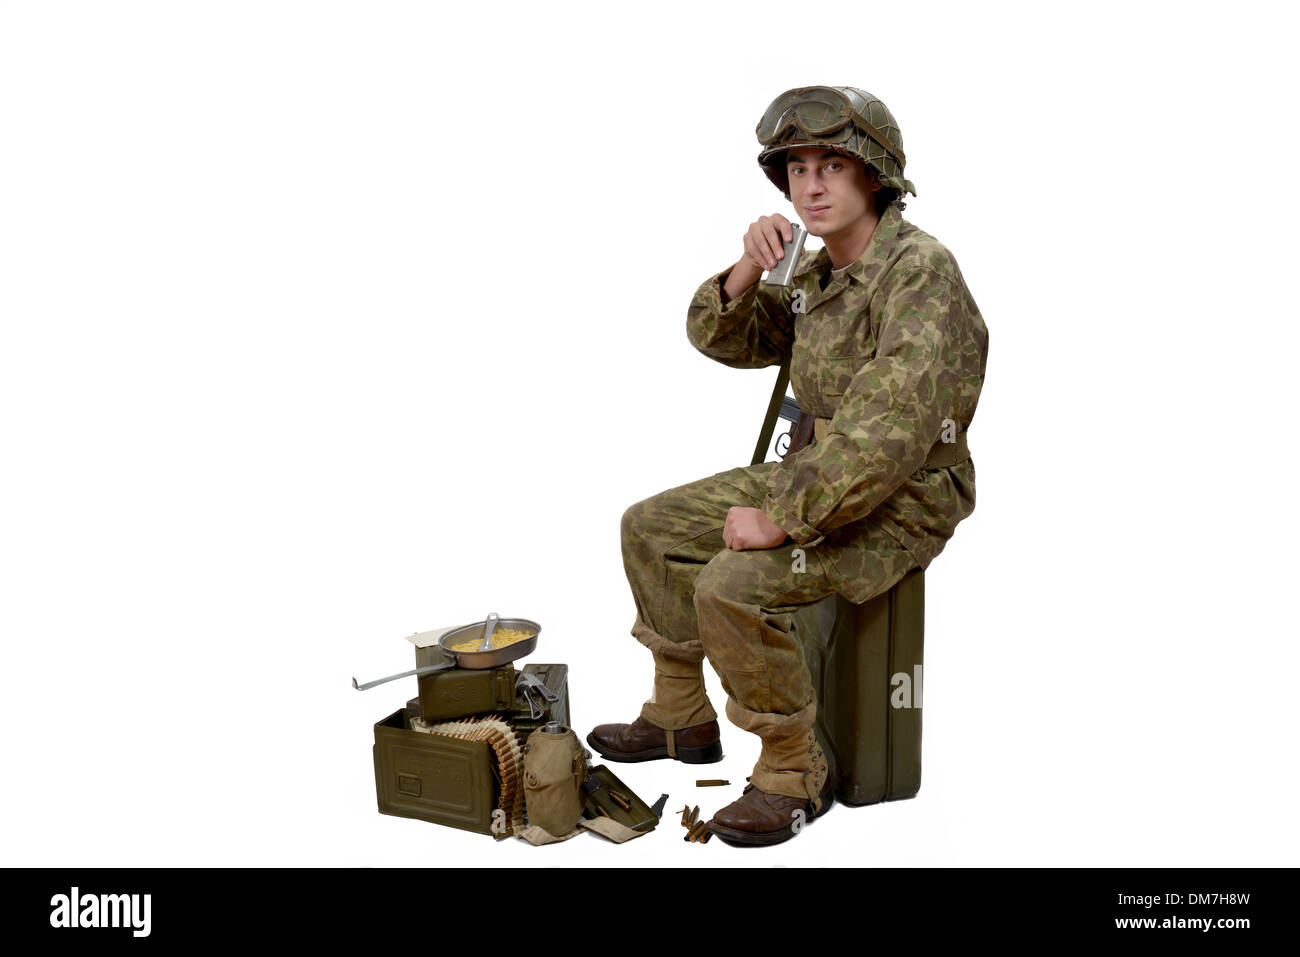 young American soldier in camouflage uniform drink - Stock Image